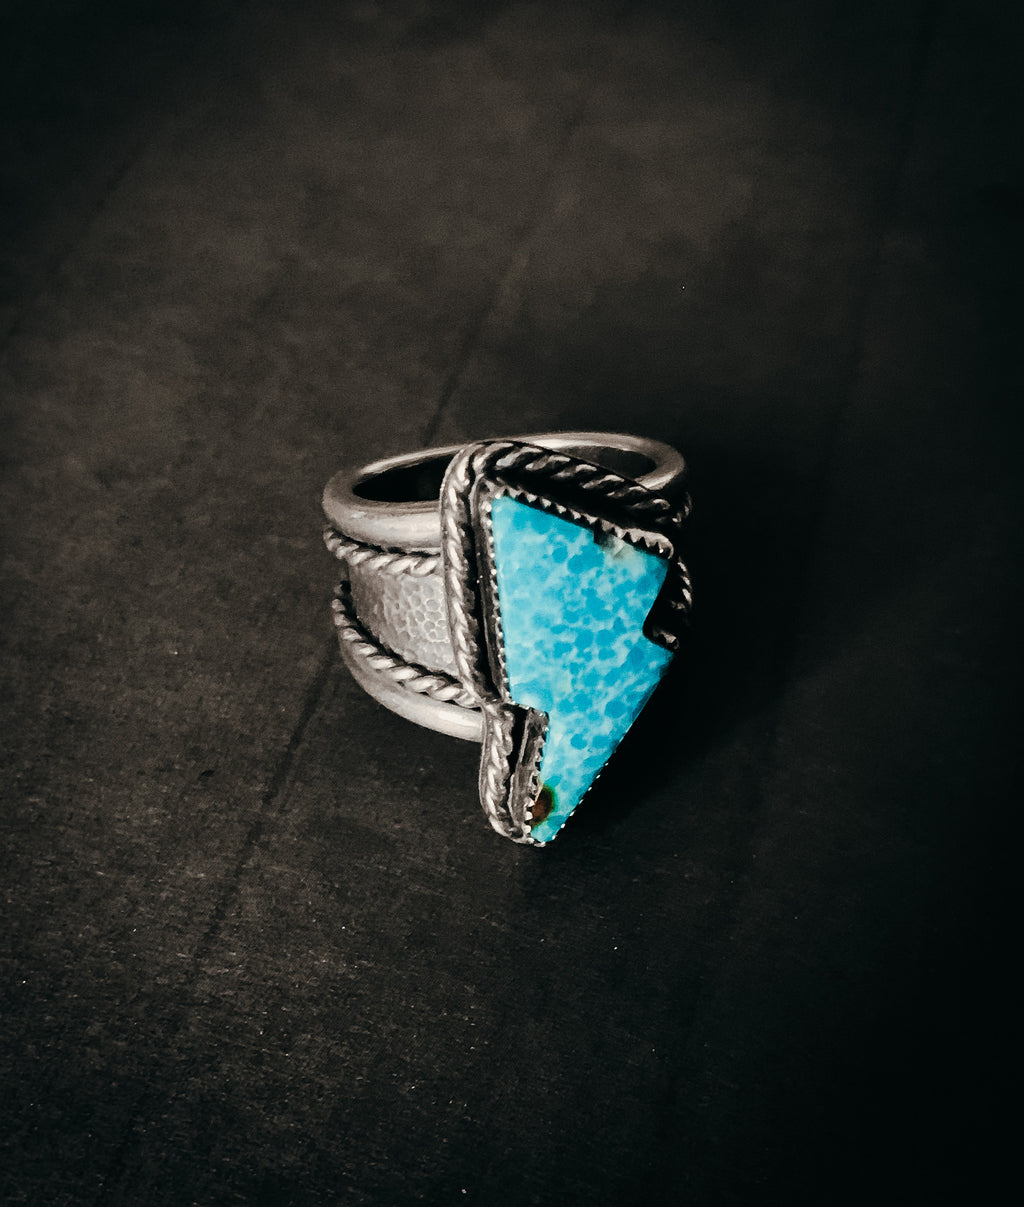 Whitewater bolt ring- size 10.5